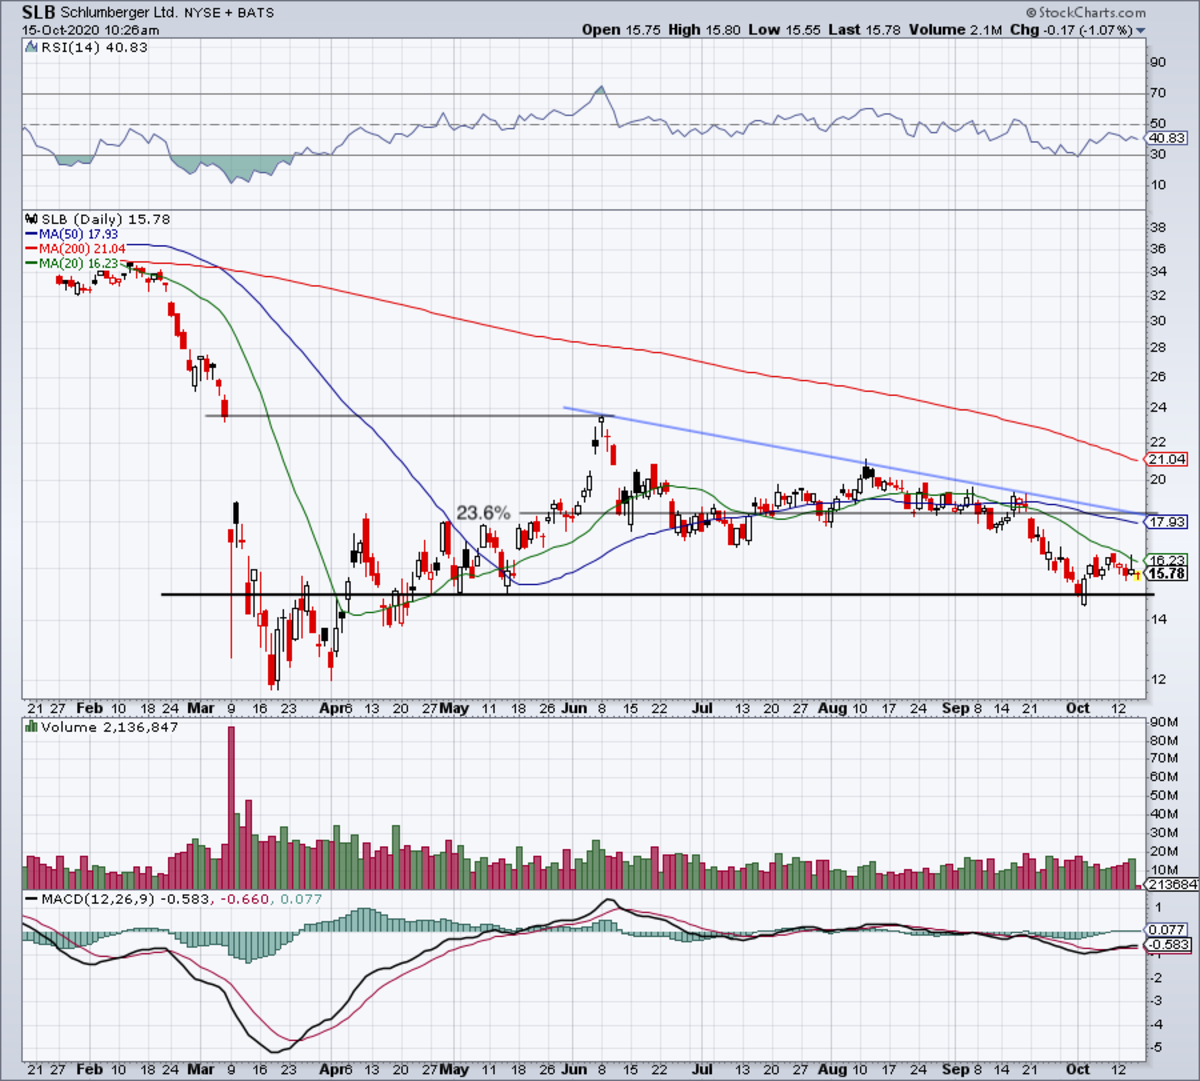 Daily chart of Schlumberger stock.